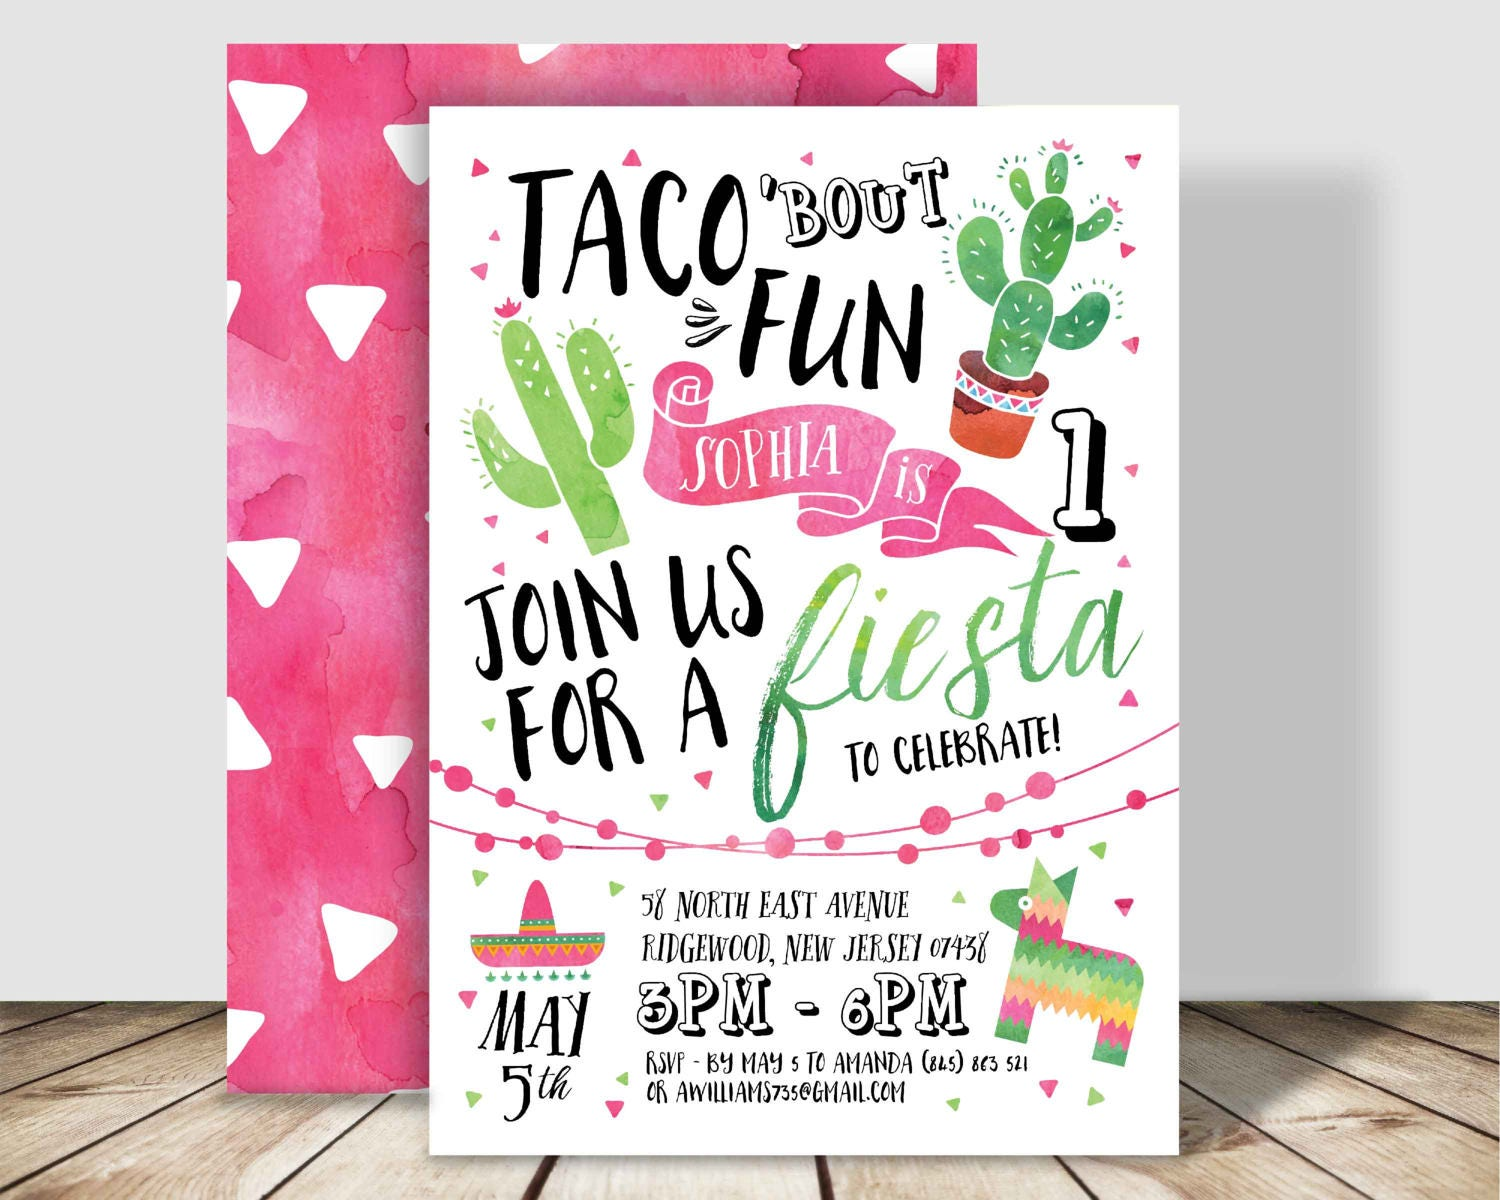 Taco Bout Fun Fiesta Birthday Party Invitation X - Birthday party invitation in spanish